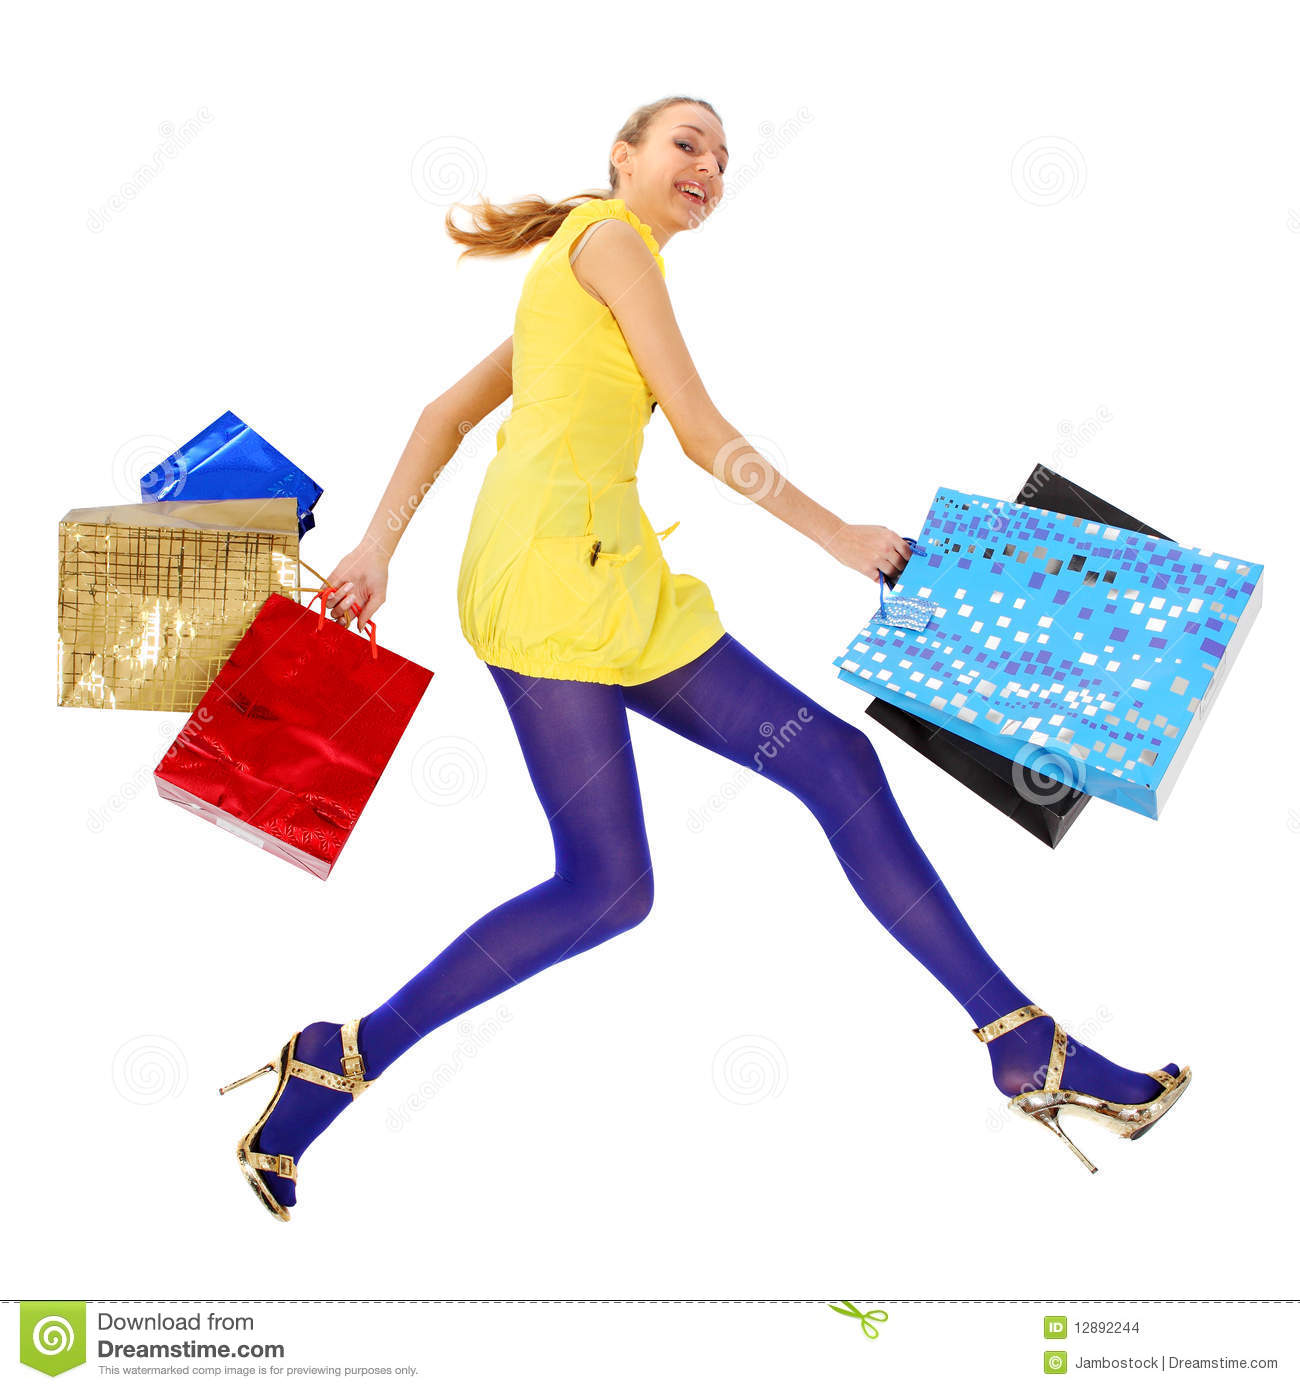 Get started in A fabulous Ladies handbag Internet business